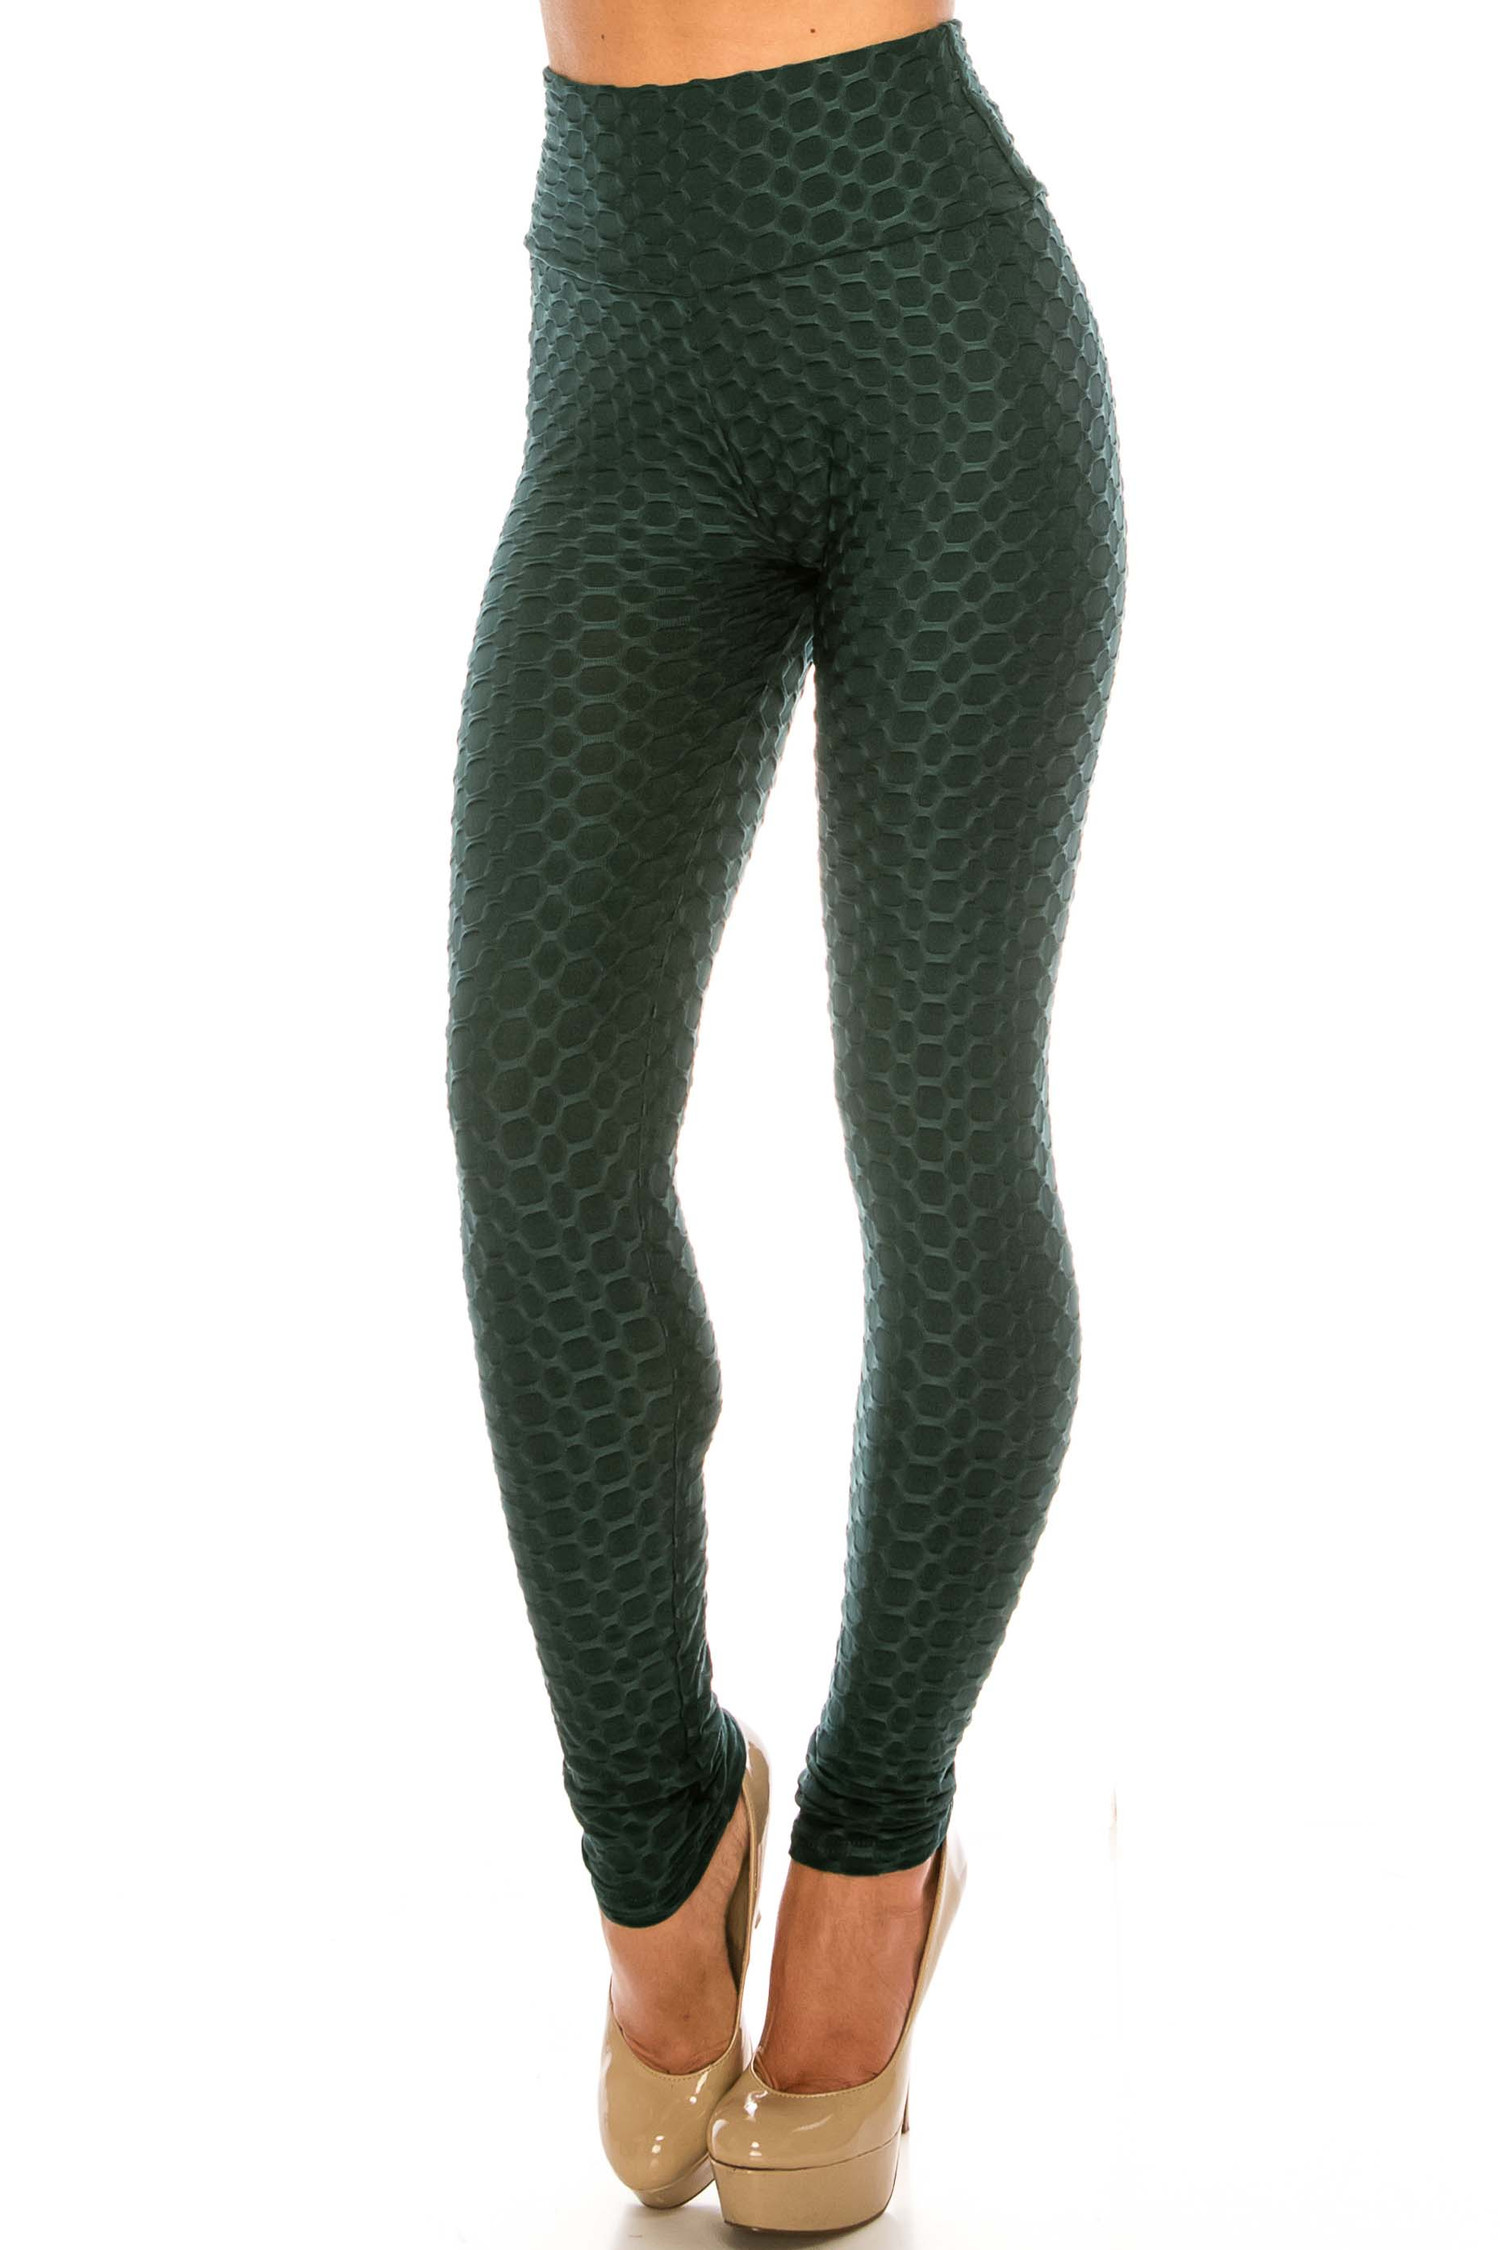 Scrunch Butt Sport Leggings with Side Pockets